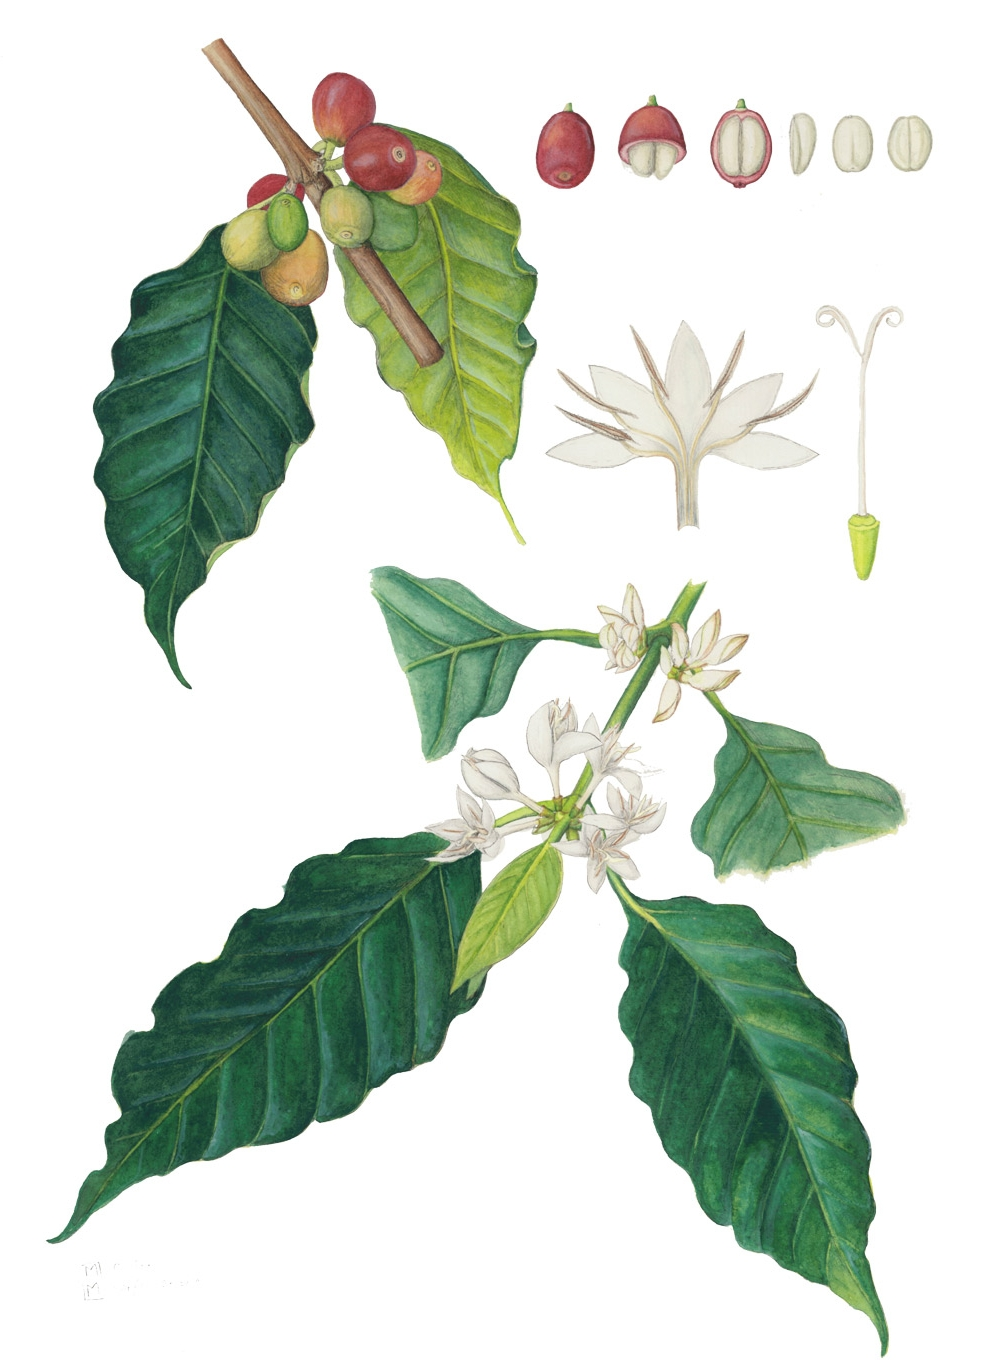 Coffea_arabica_Coffee_illustration_Mara-Menahan.jpg